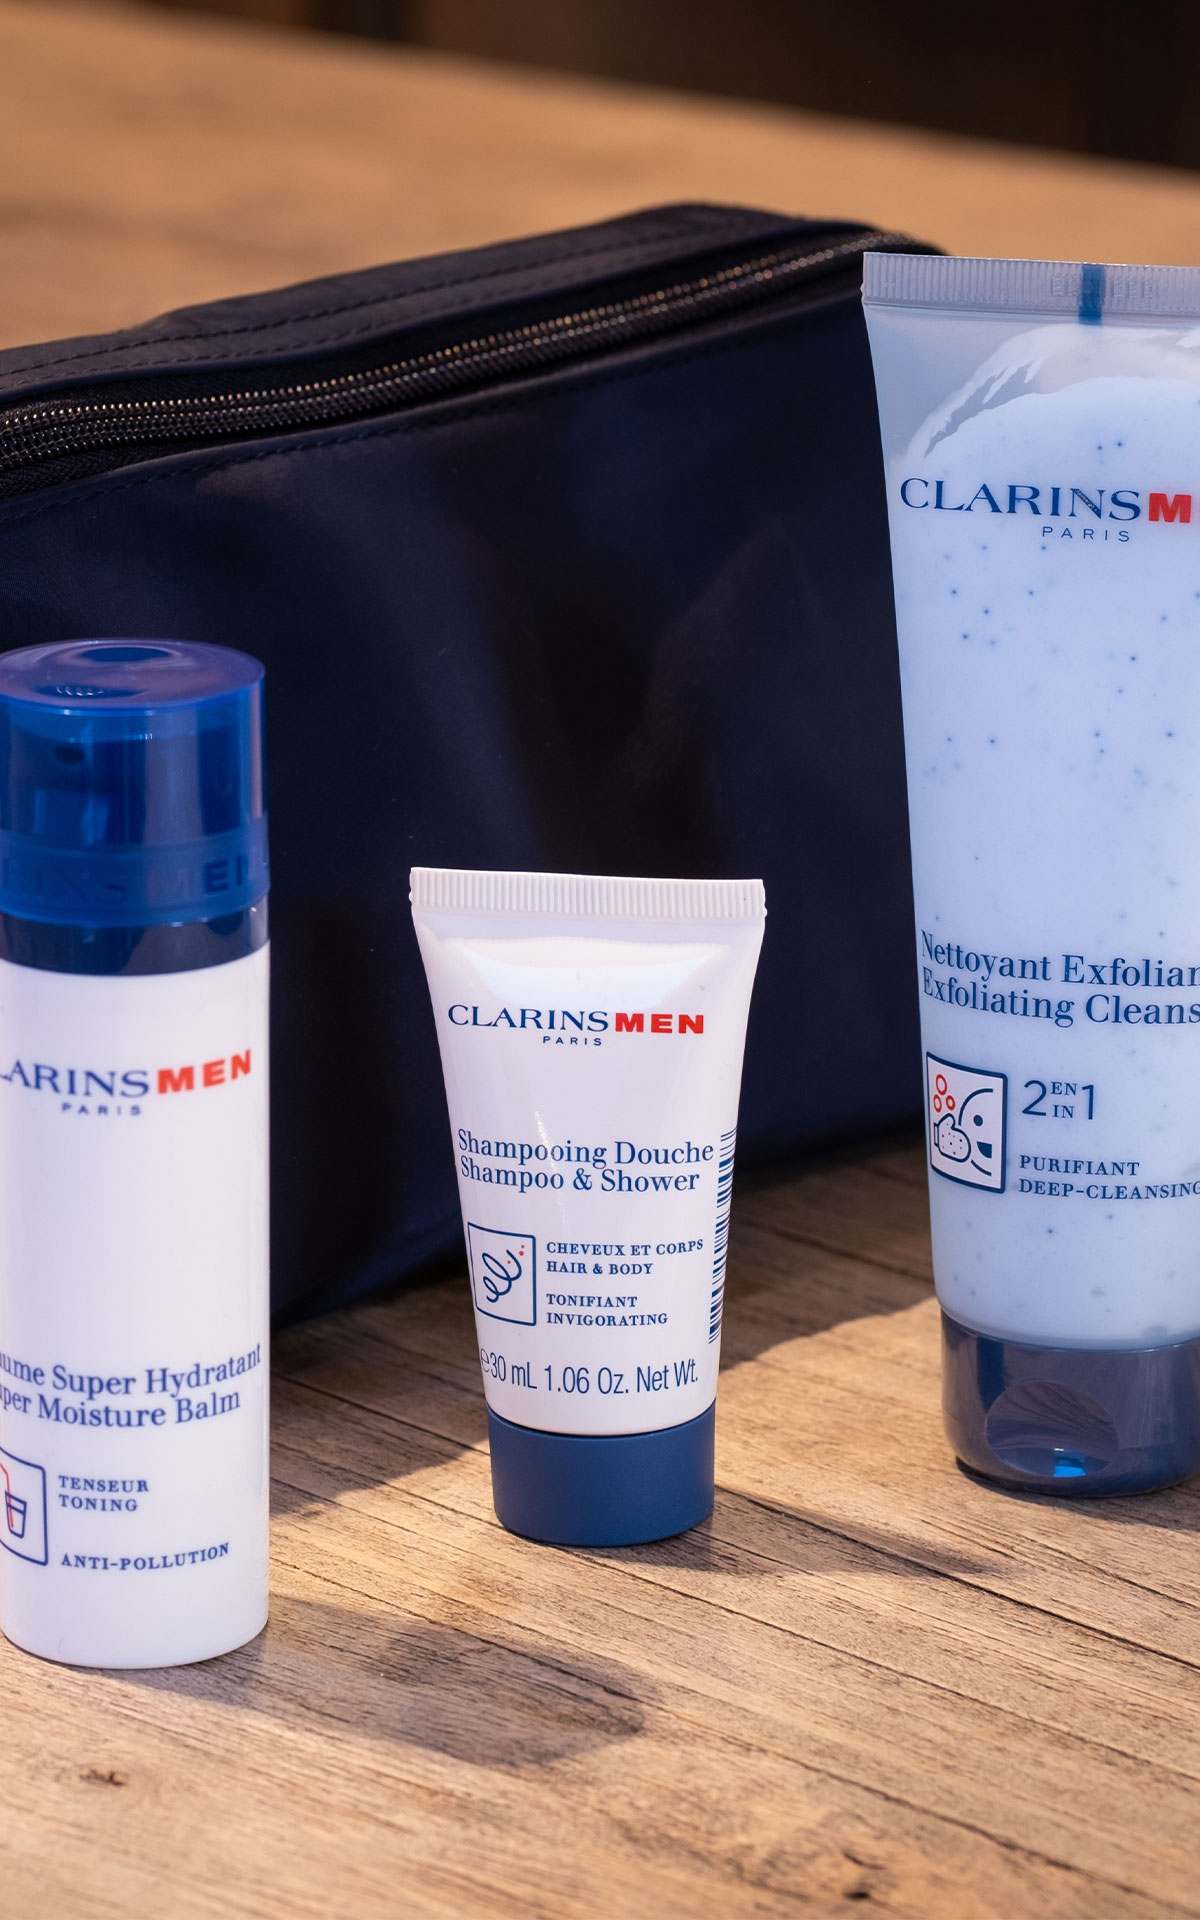 Clarins Men's essential collection from Bicester Village